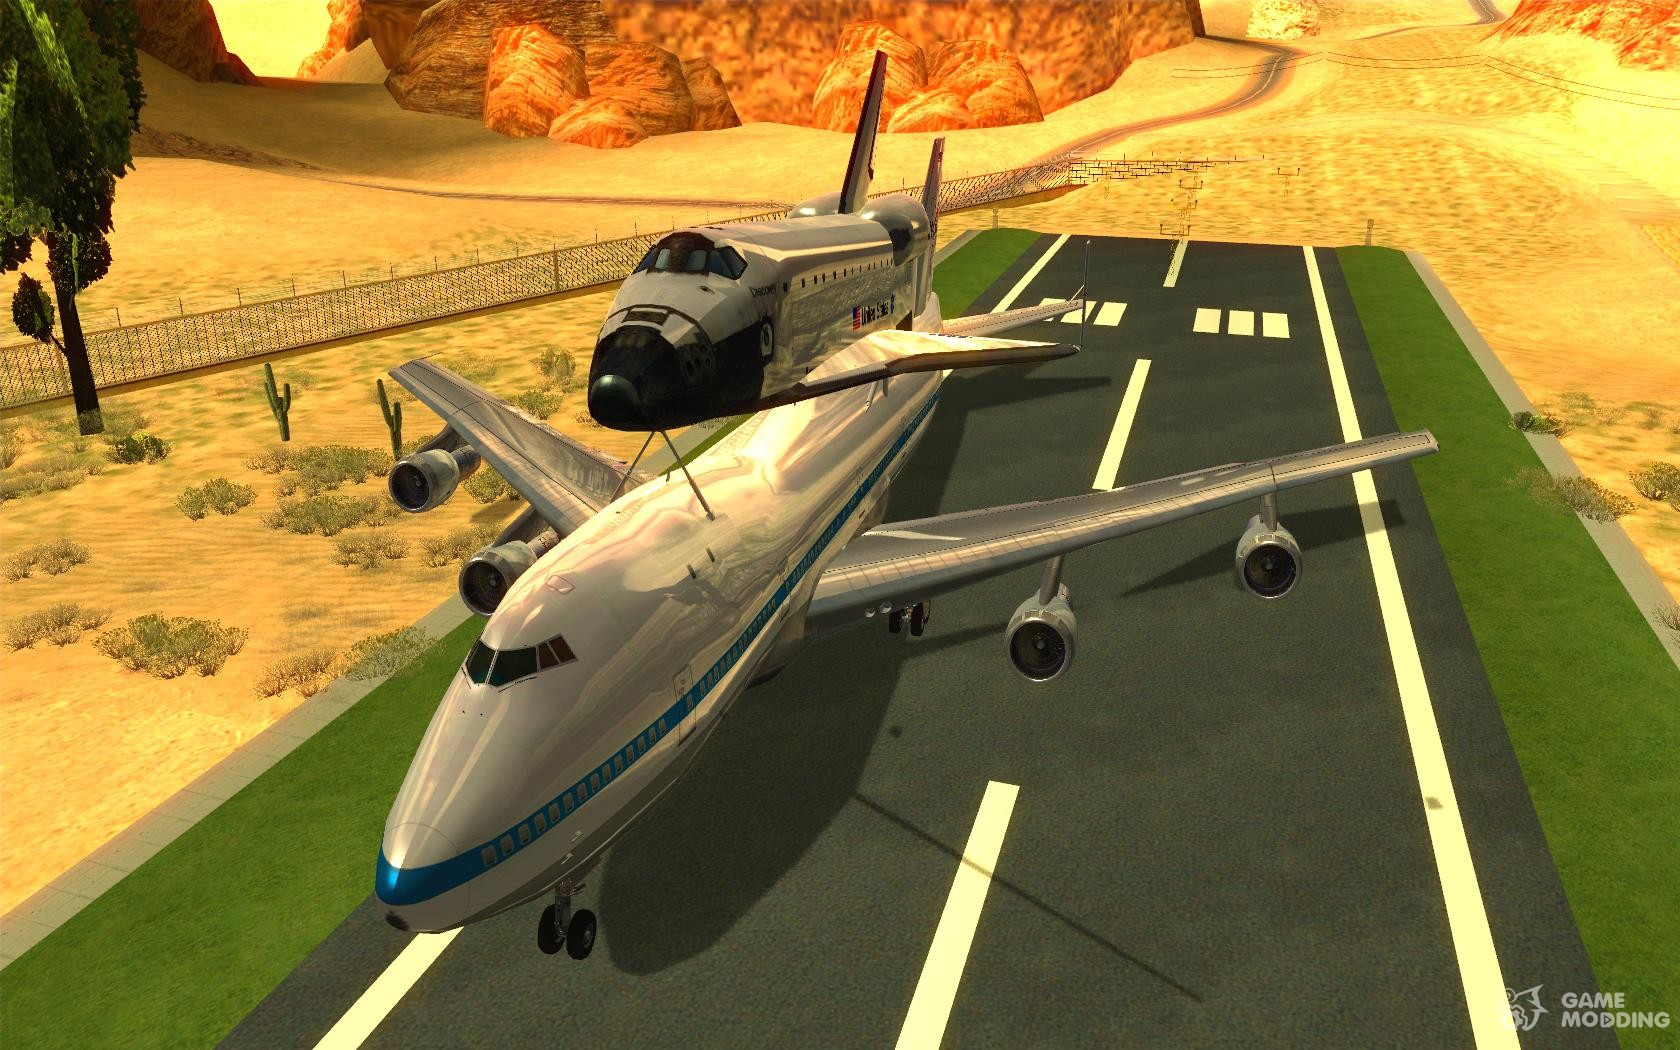 gta 5 space shuttle mission - photo #21